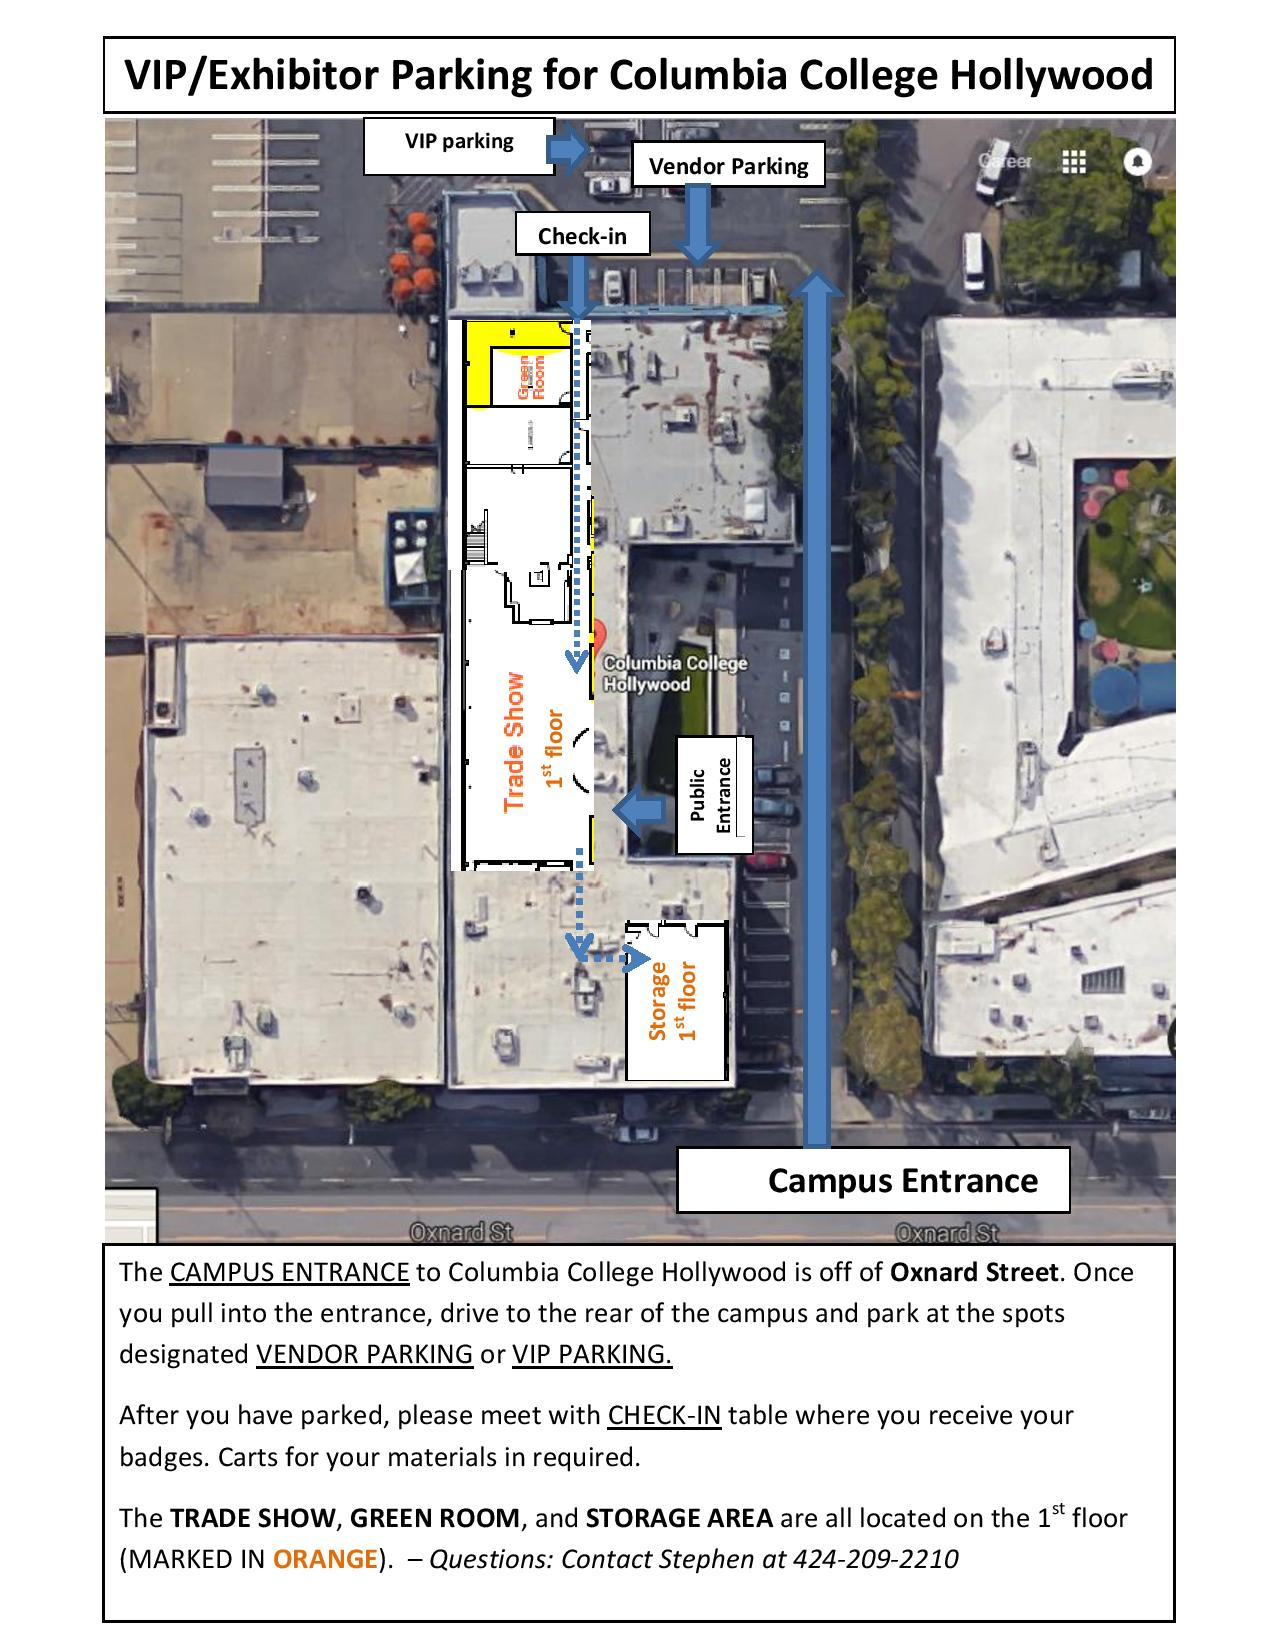 CCH_VIP_Vendor_Parking_Instructions (1)-page-001.jpg